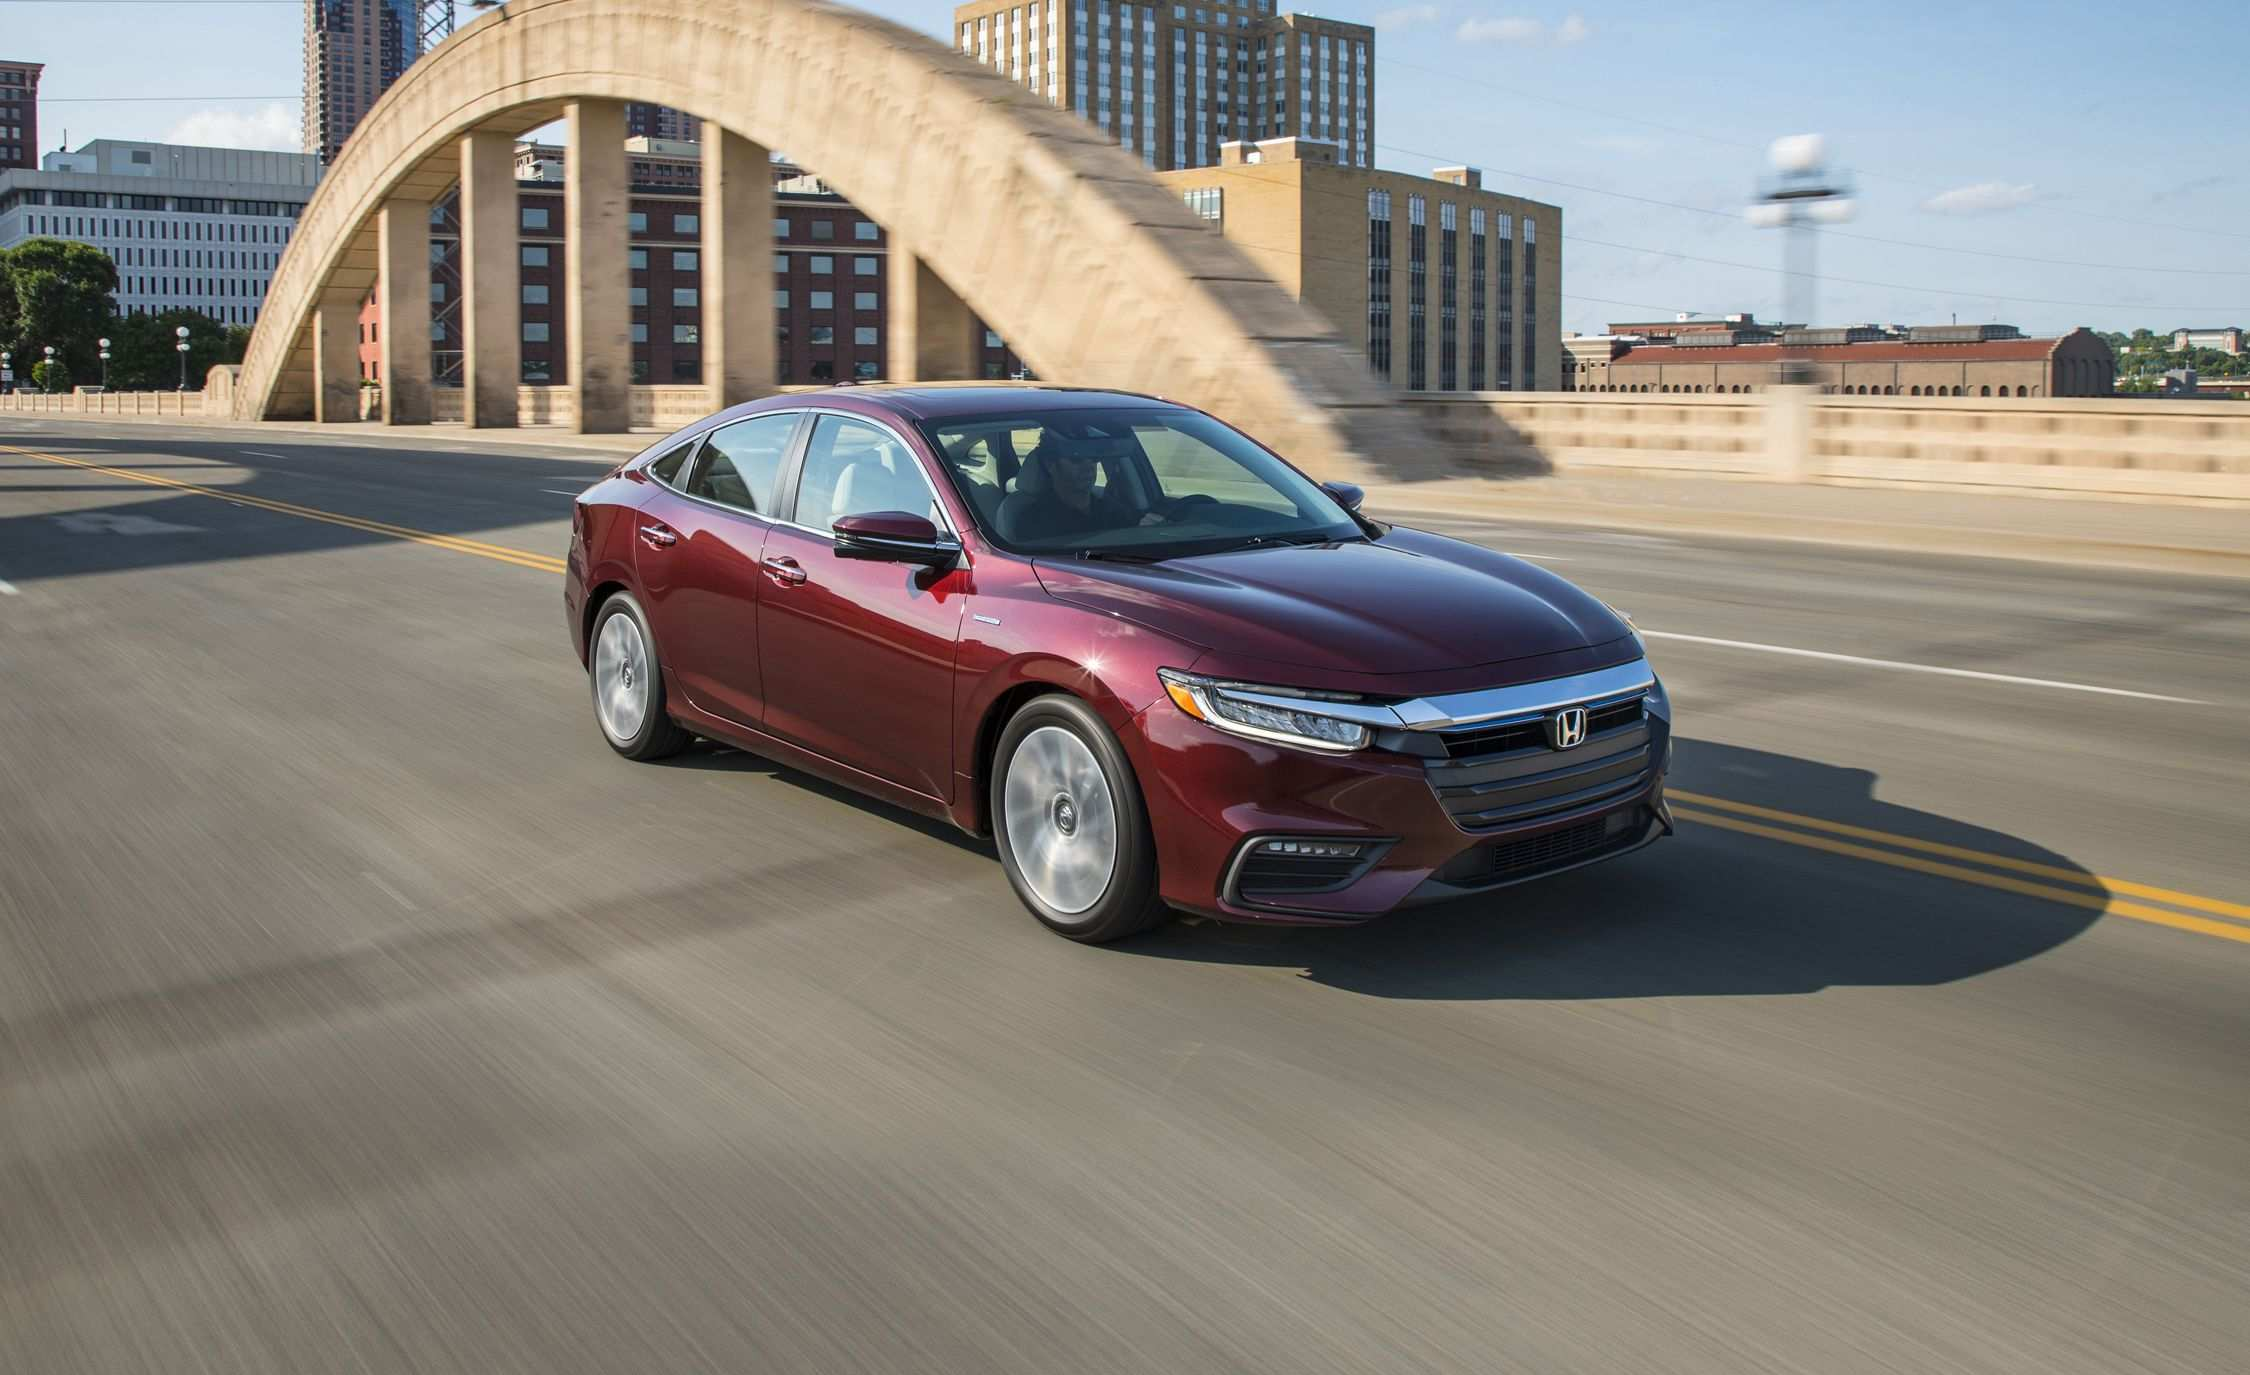 92 New The Honda 2019 Insight Review Specs Style by The Honda 2019 Insight Review Specs